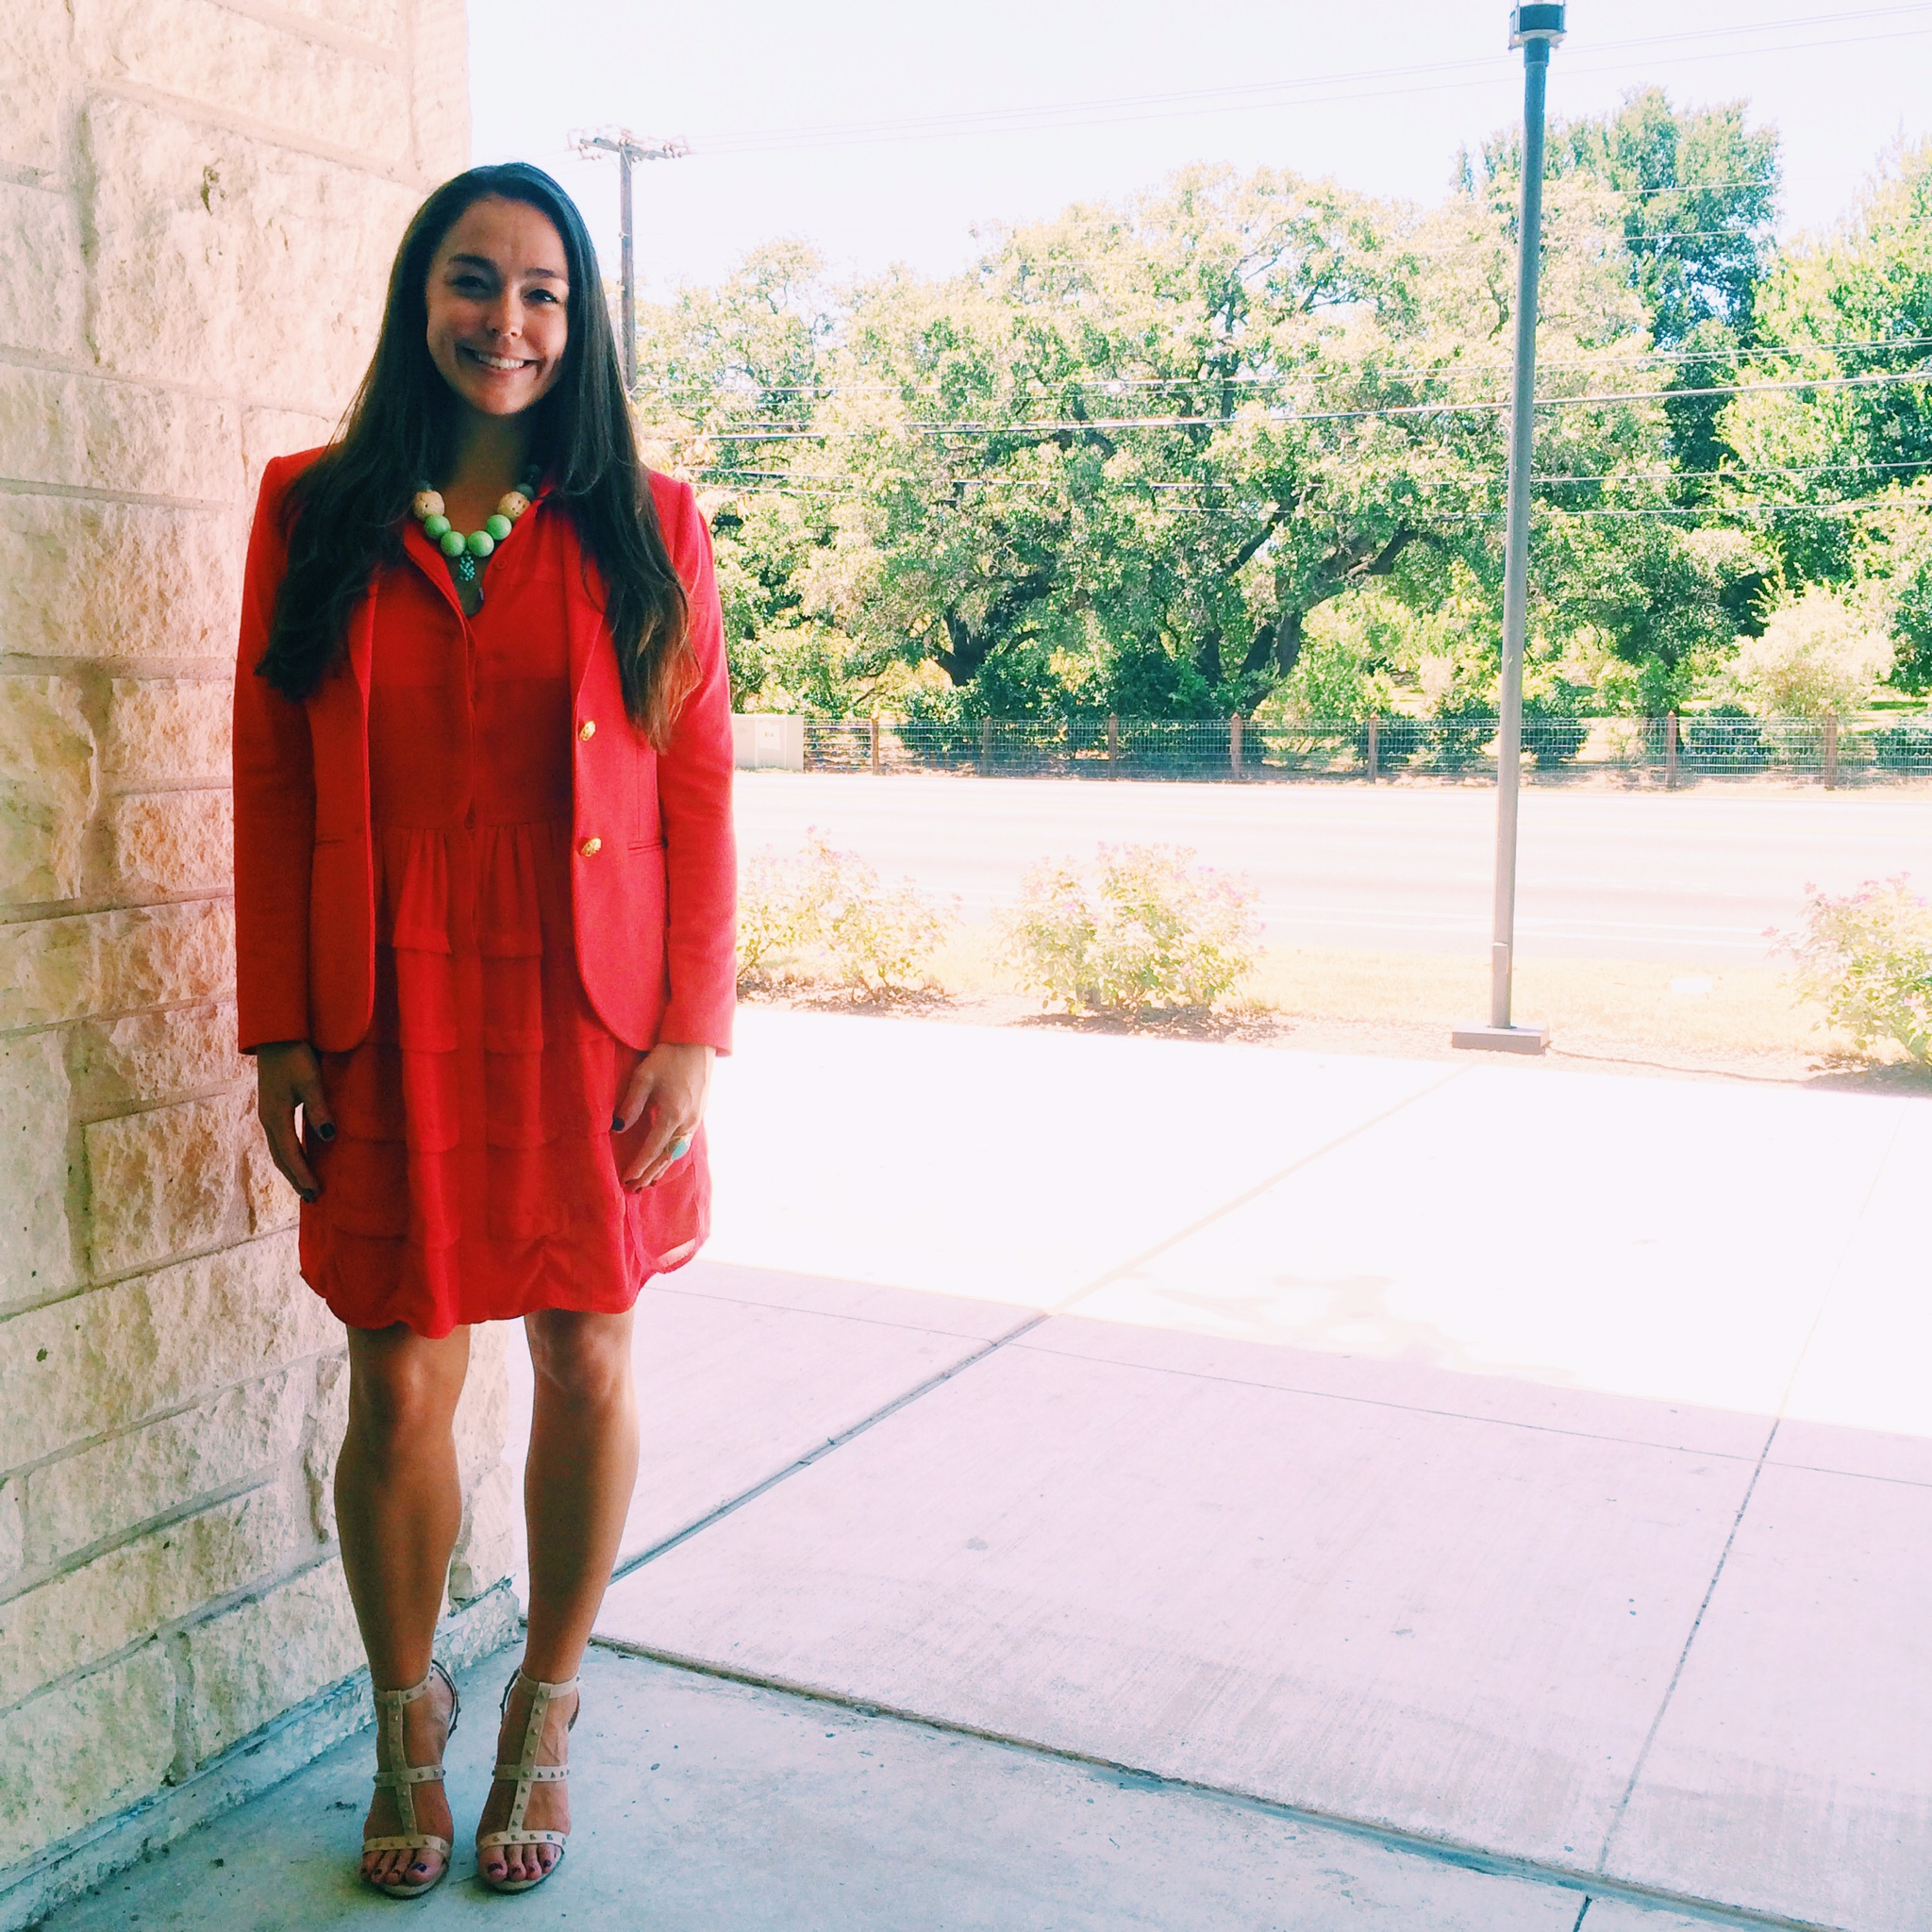 Raquel Greer Gordian models a business attire look that incorporates her favorite summer dress.